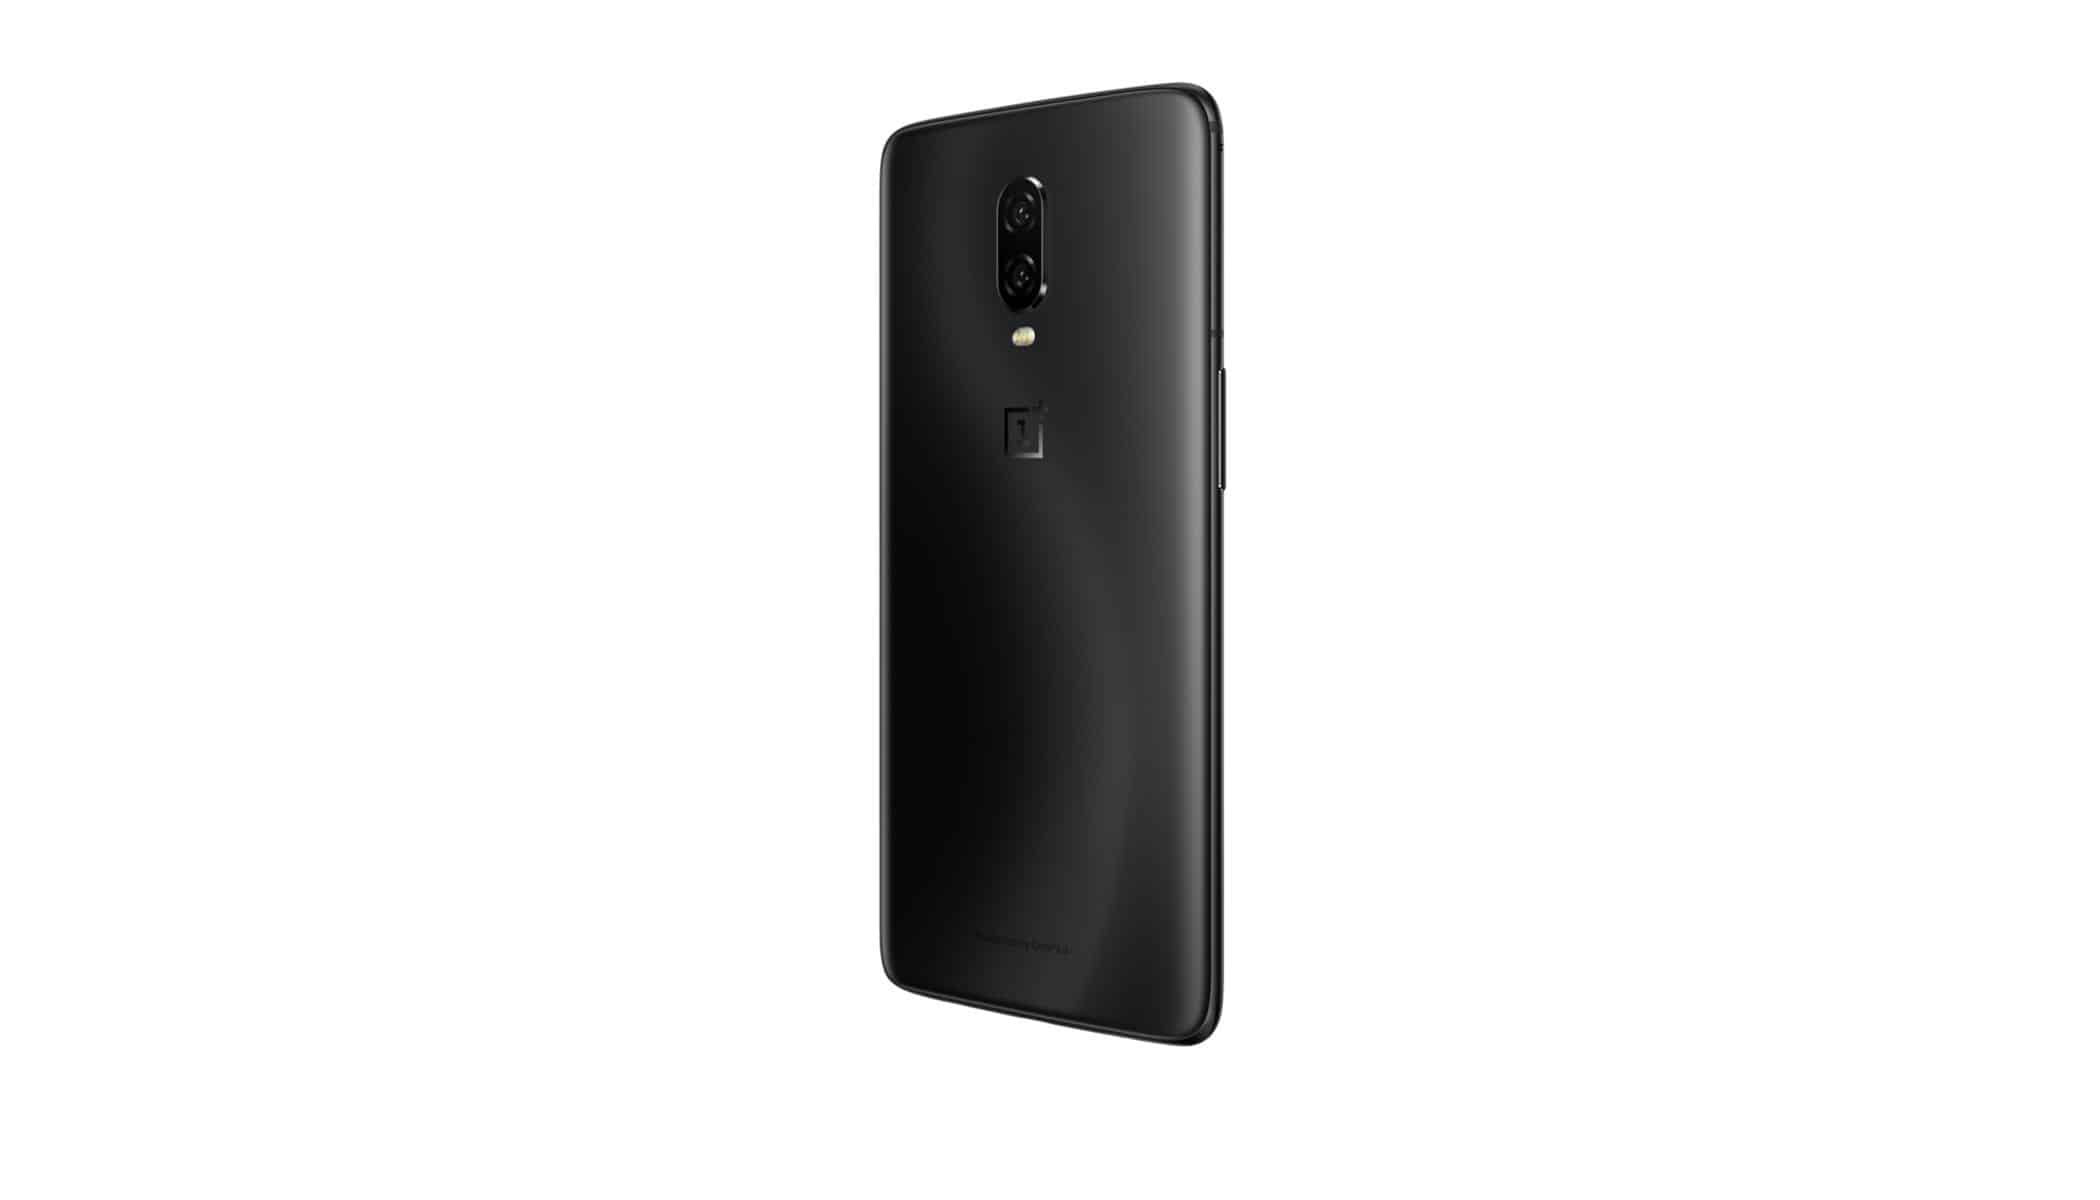 OnePlus 6T Official Product Render 3